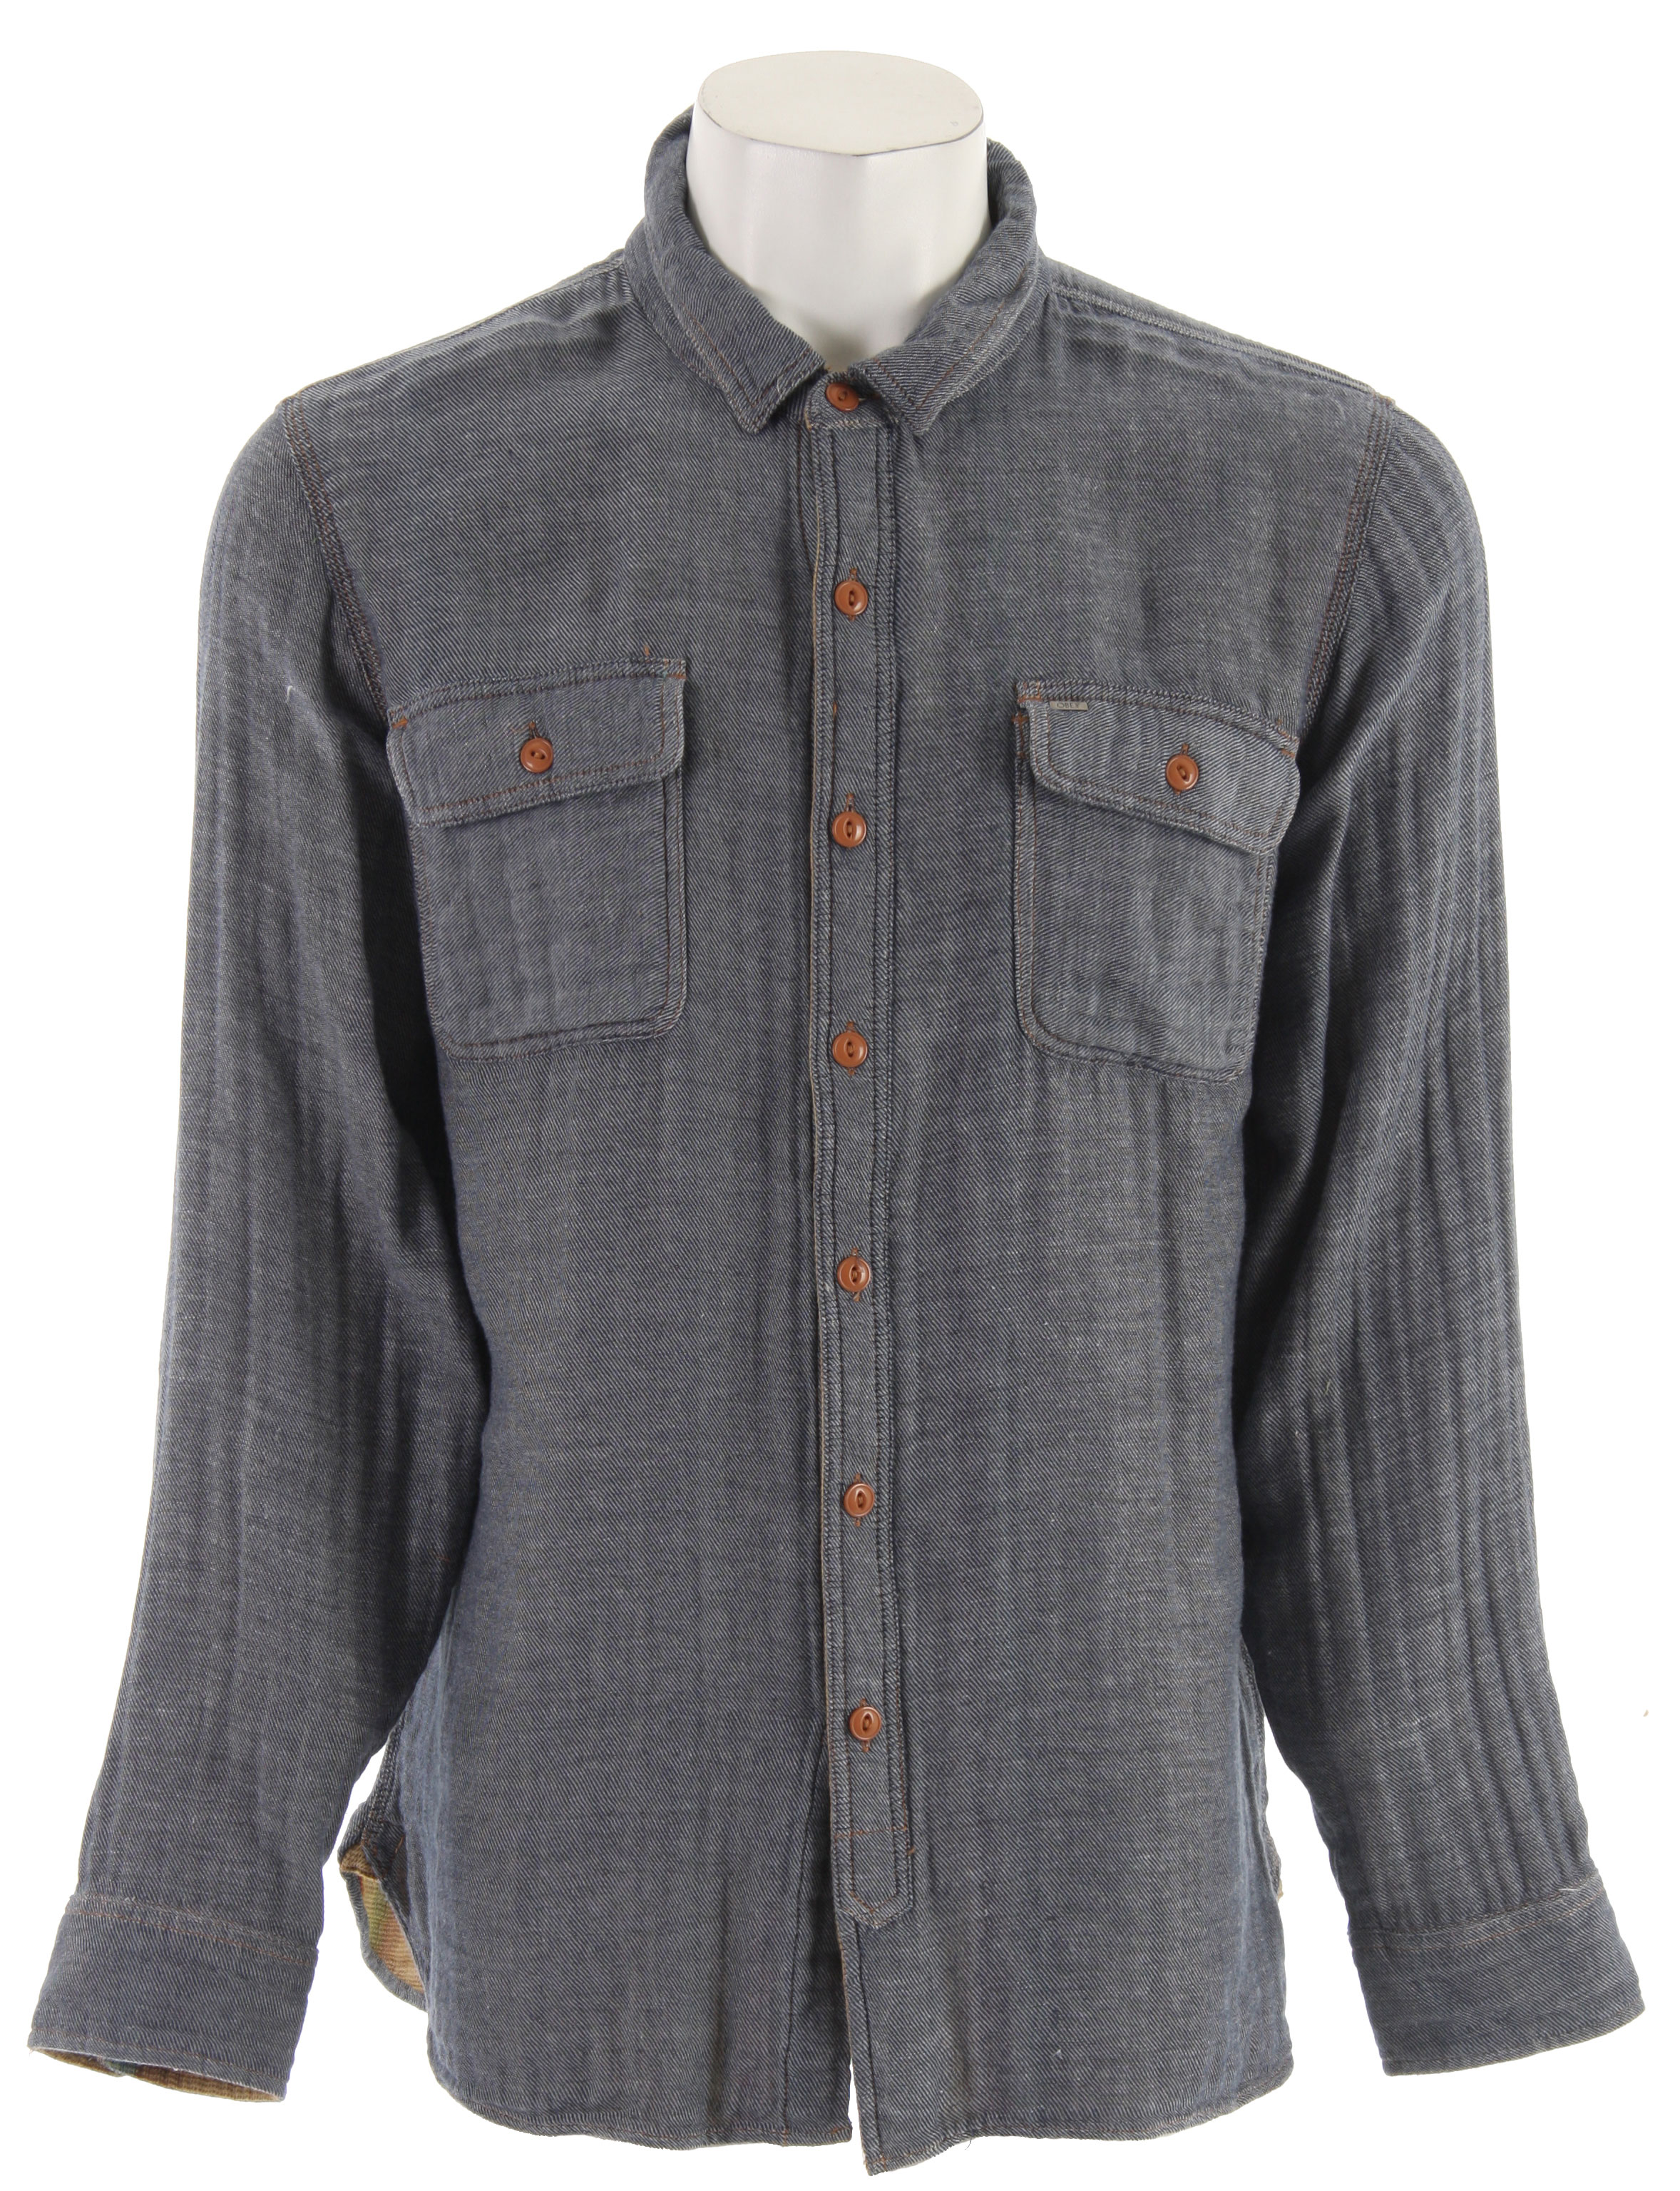 The Obey Toluca shirt is the perfect piece for cool spring night around a bon-fire.Key Features of the Obey Toluca Shirt Indigo:100% Cotton - $43.95